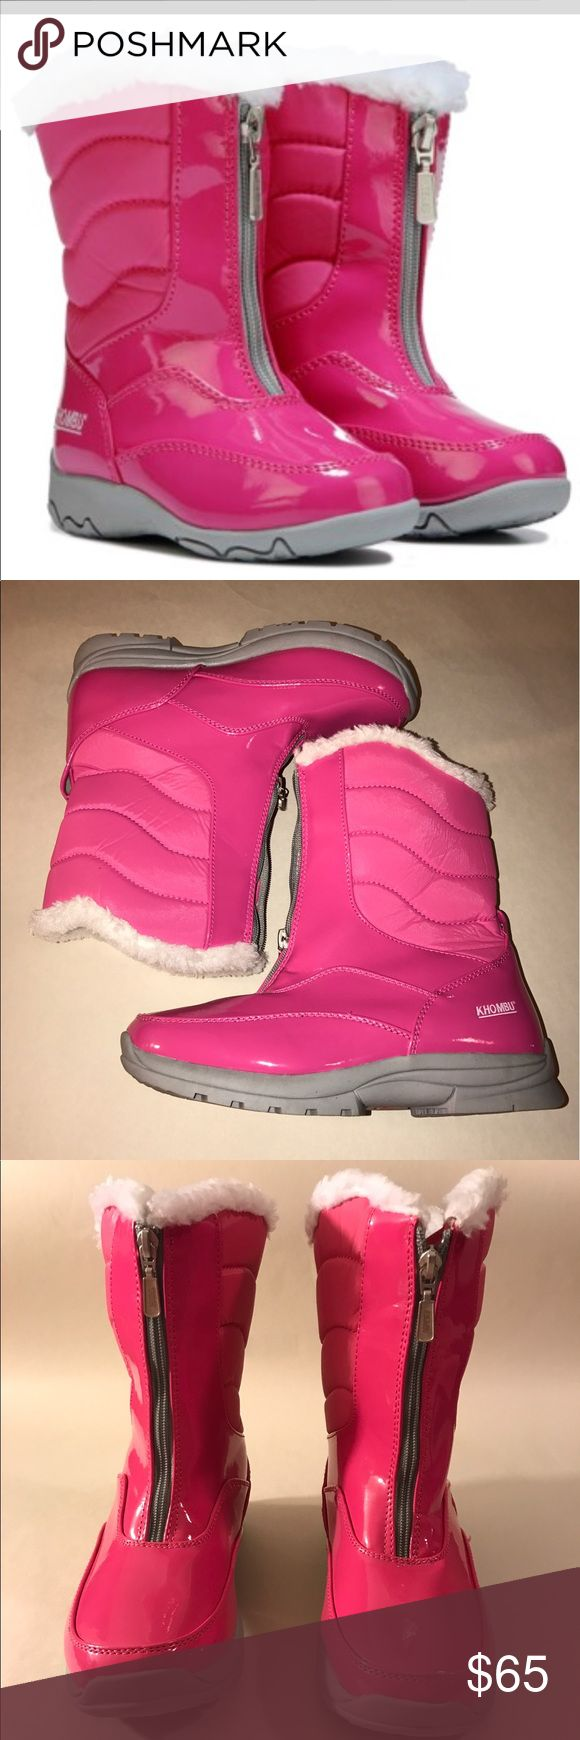 """KHOMBU PINK WAETHER PROOF BOOTS **KHOMBU WOMENS DAVIA PINK WATERPROOF WINTER BOOTS** 💗NO TRADES💗 -brand new -never used -7 3/4"""" shaft height -11"""" shaft circumference  -faux sheer lining -synthetic upper in a winter boot style -round toe -rubber traction outsole for extra protection  -beautiful pink and white colors -zip up to make easier put on -comes from a pet free and smoke free home Khombu Shoes Winter & Rain Boots"""